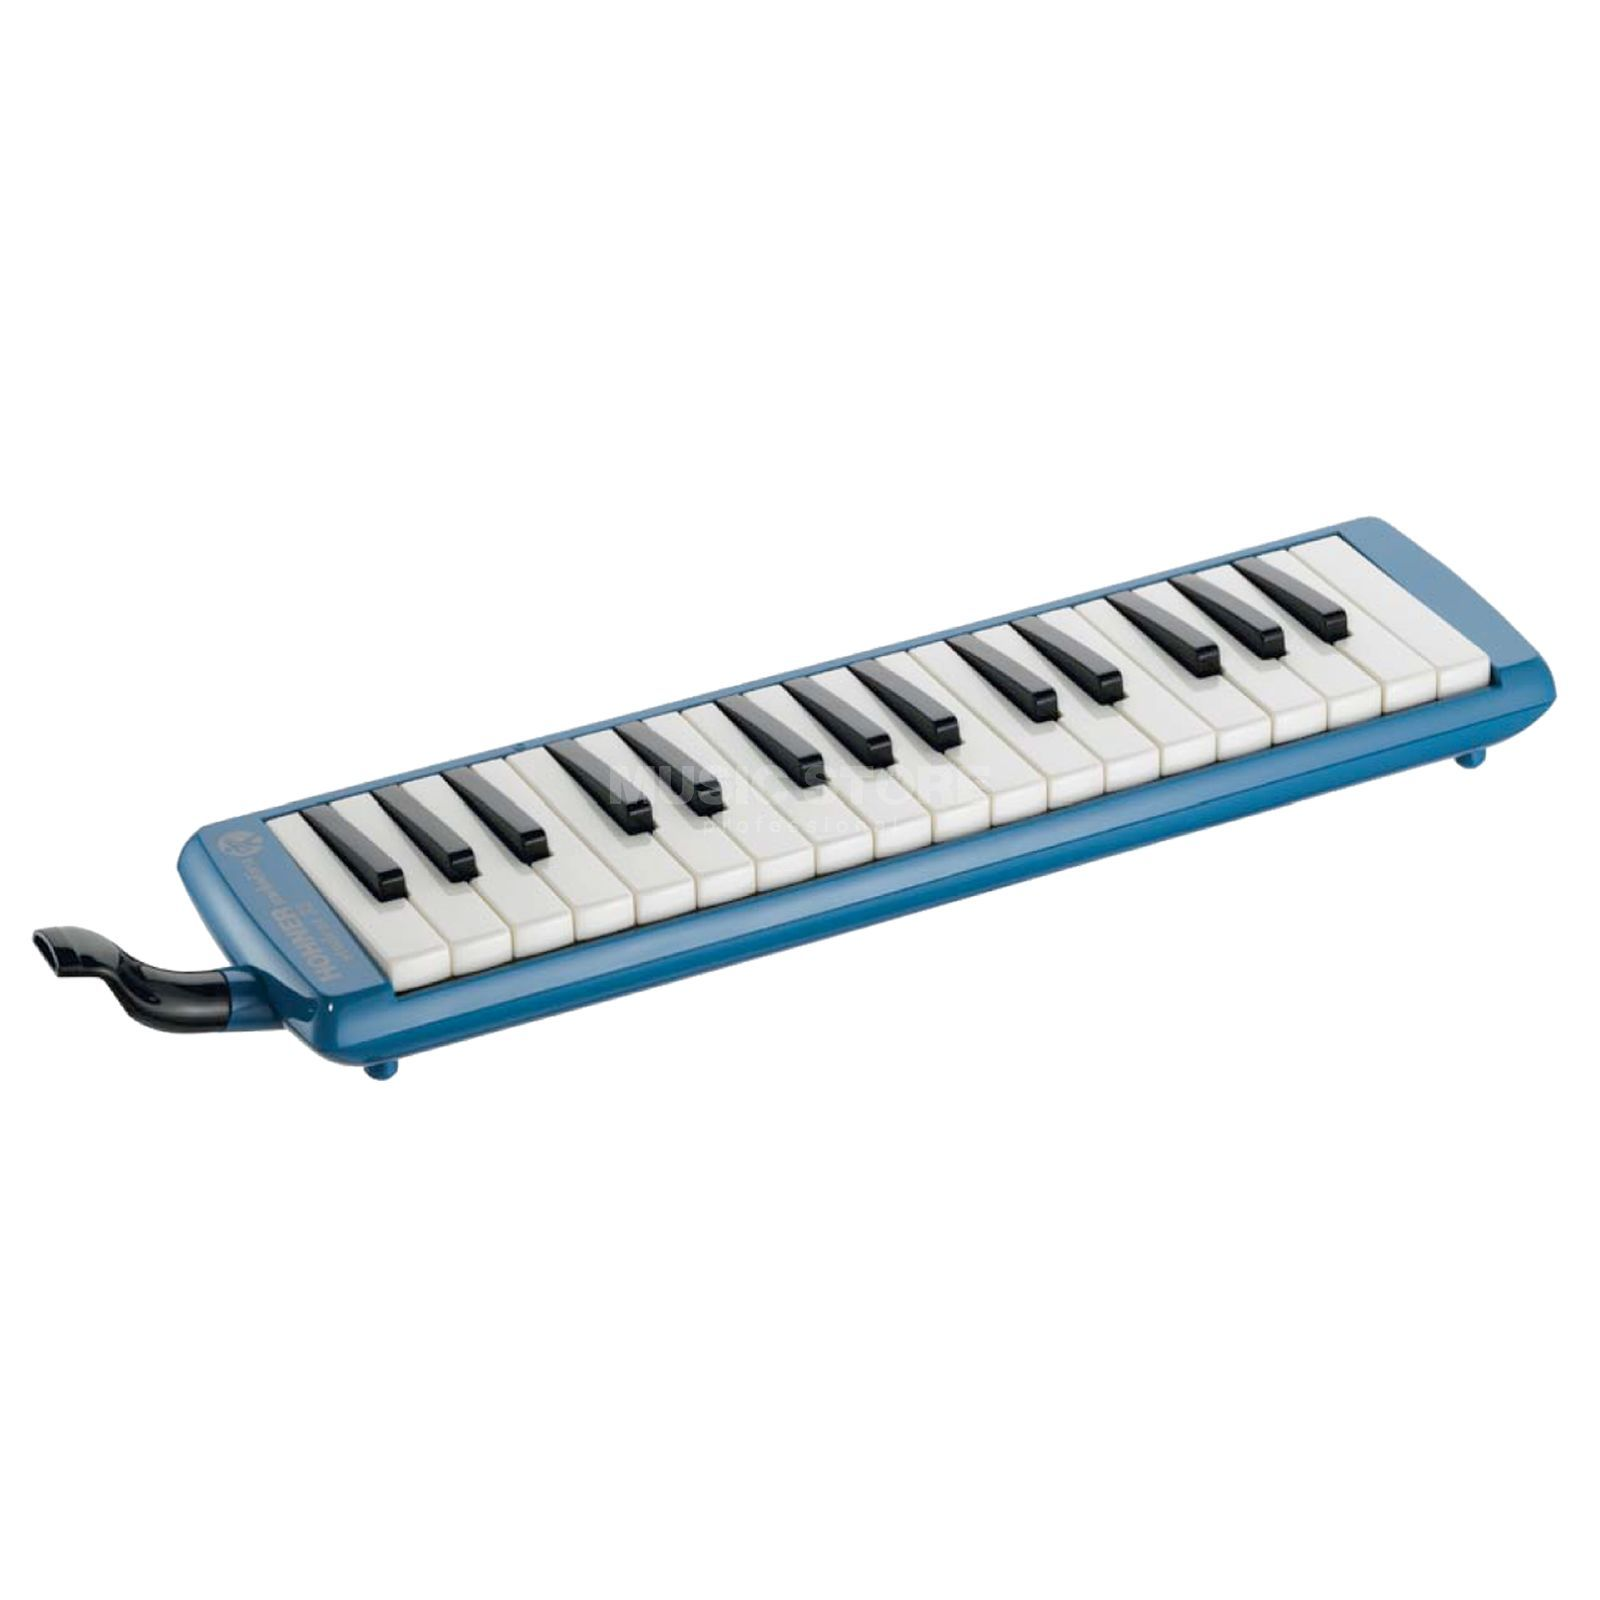 "Hohner ""Student 32"" Melodica Blue Incl. Case and Accesories Product Image"